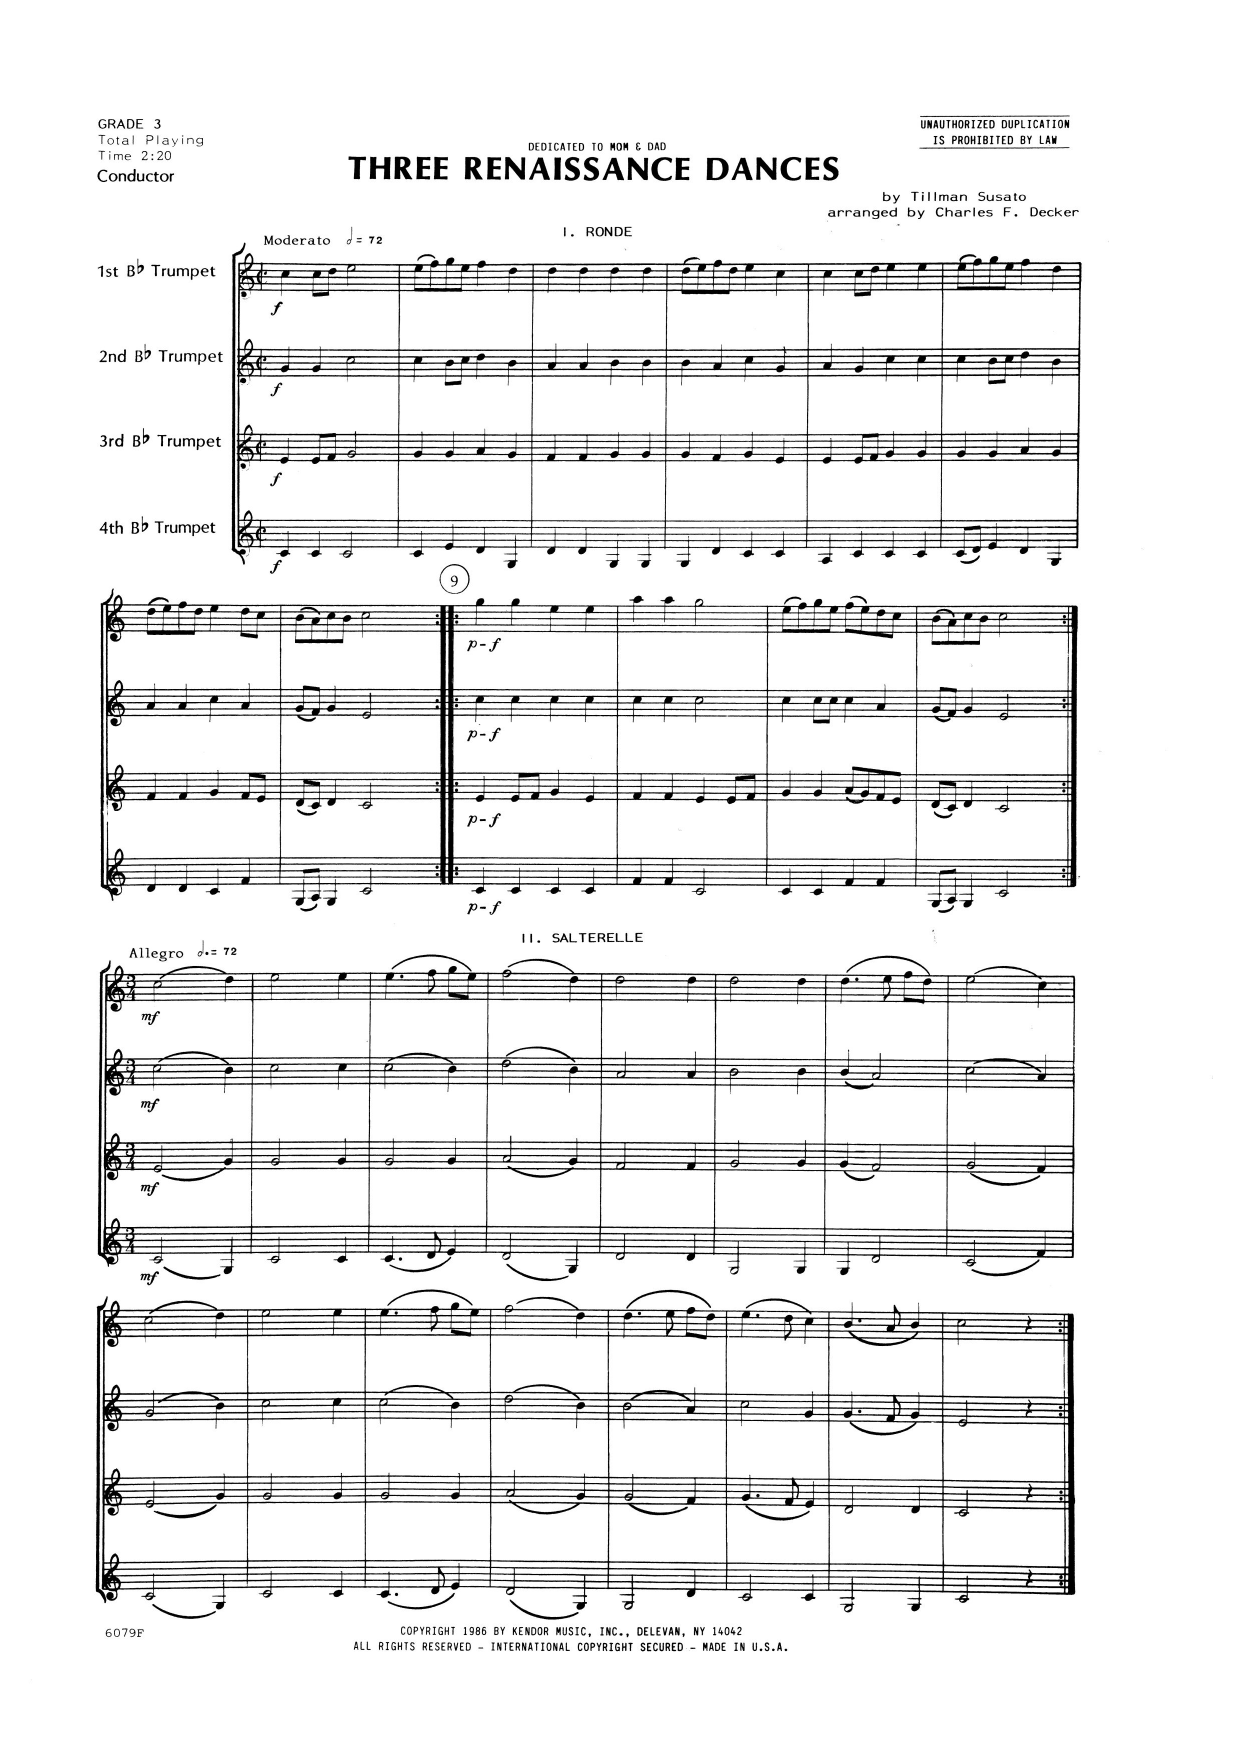 Three Renaissance Dances (From Het Derde Musyk Boexcken (The Third Little Music Book), 1551) (COMPLETE) sheet music for trumpet quartet by Charles Decker and Tillman Susato. Score Image Preview.